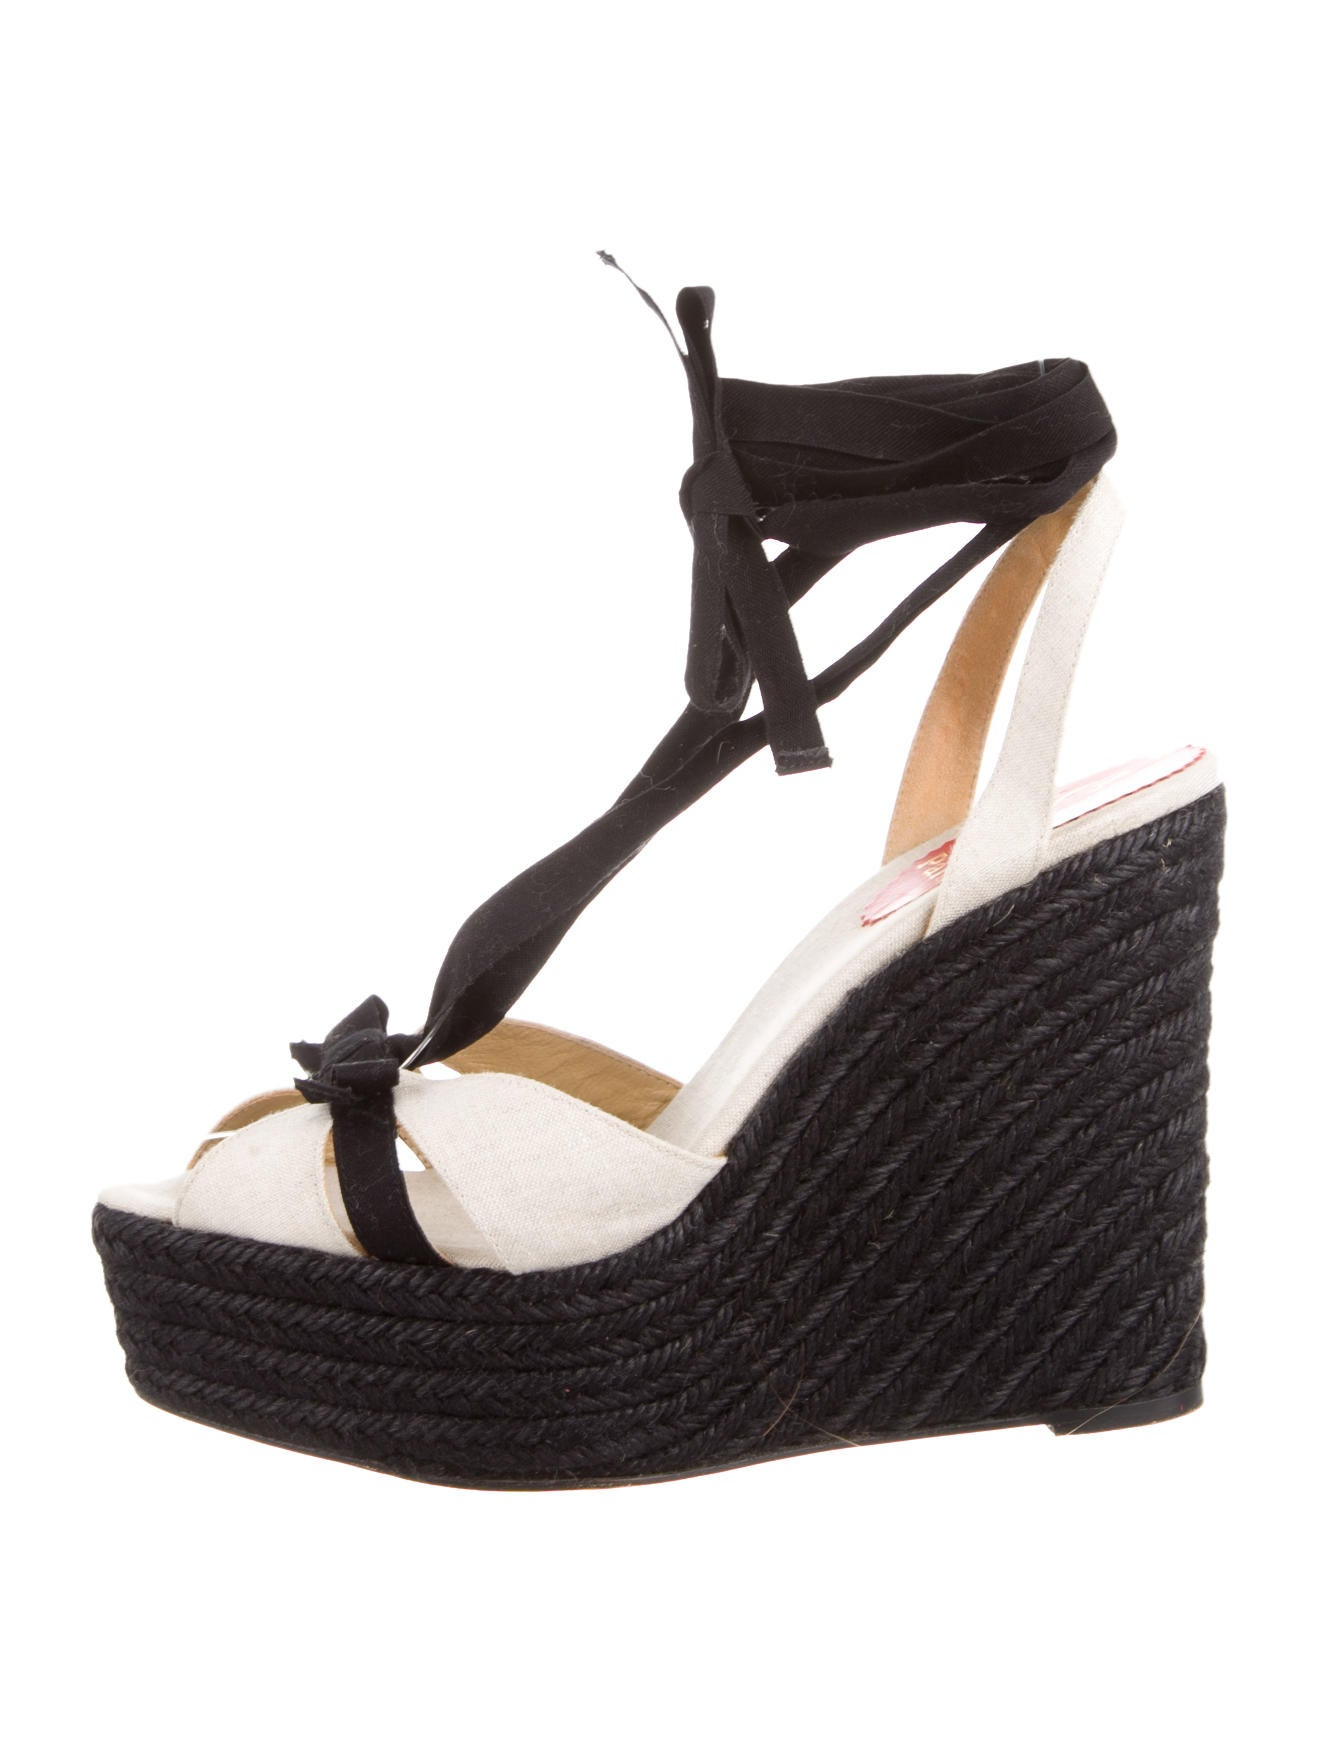 low price christian louboutin shoes - Artesur ? christian louboutin espadrille wedge sandals Beige and ...